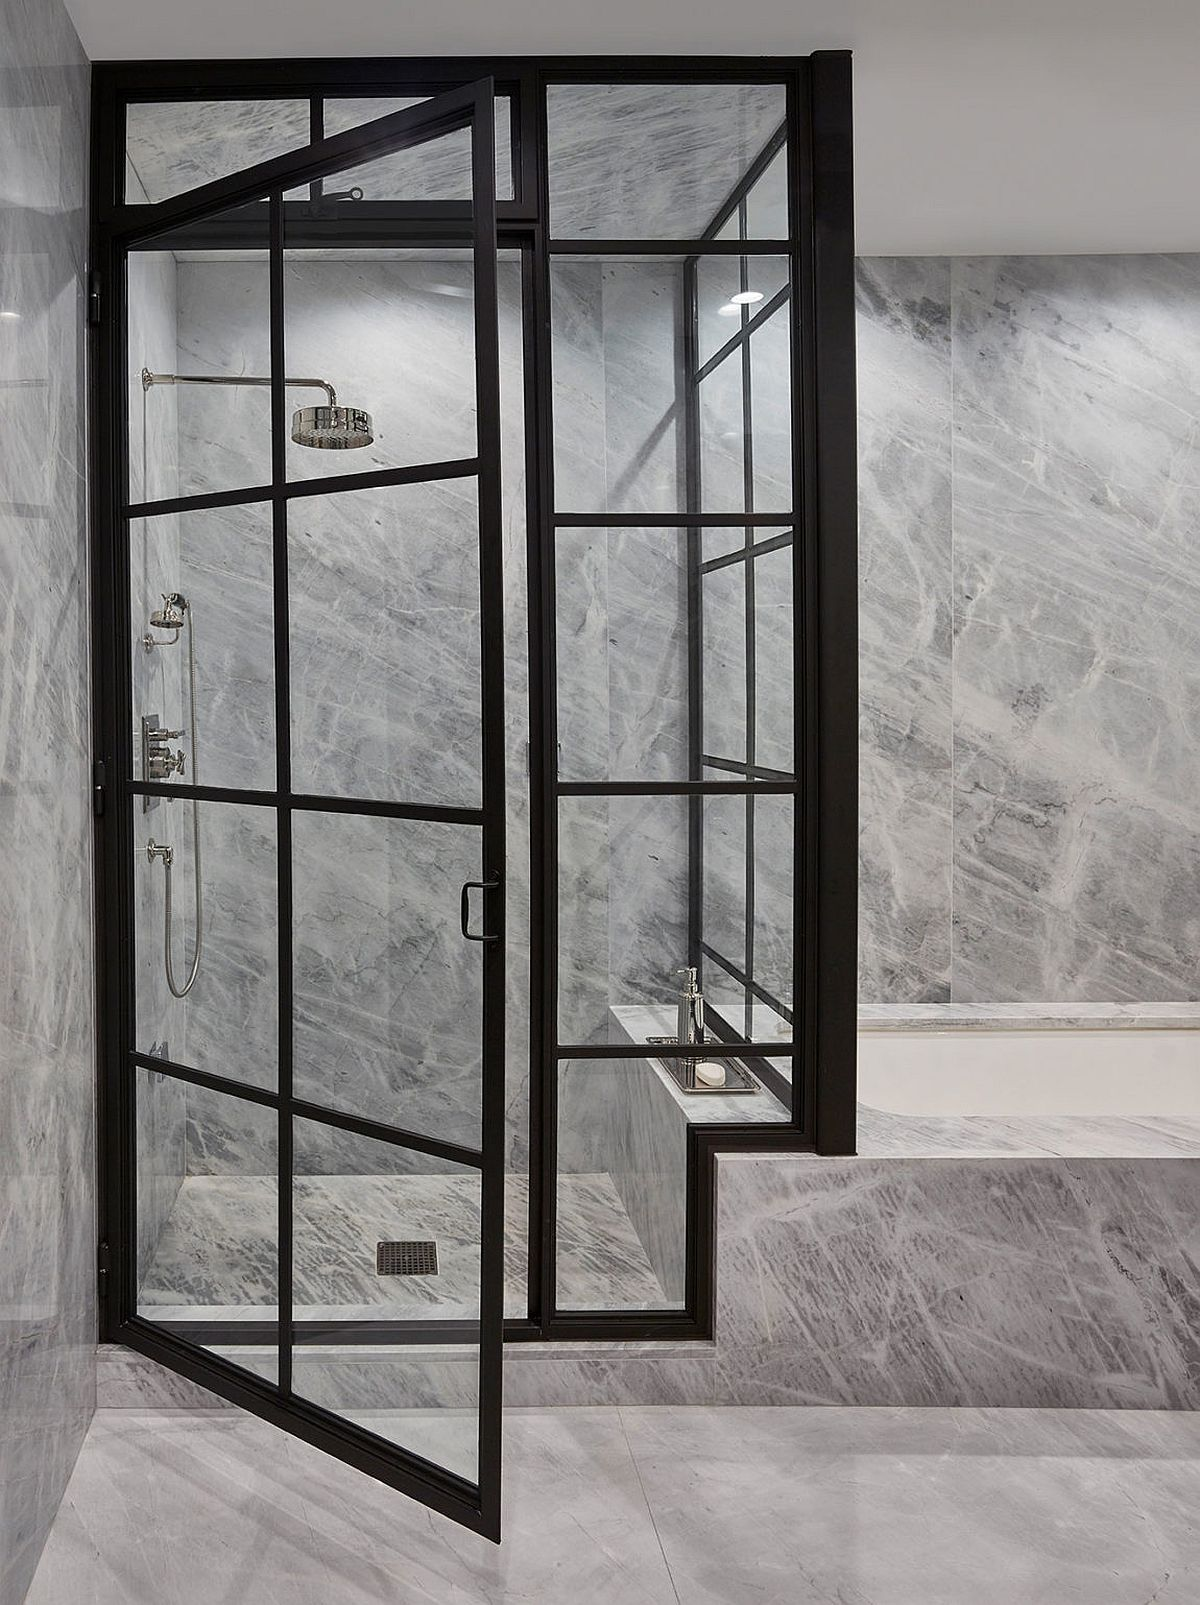 Gray stone and shower area of the penthouse bathroom